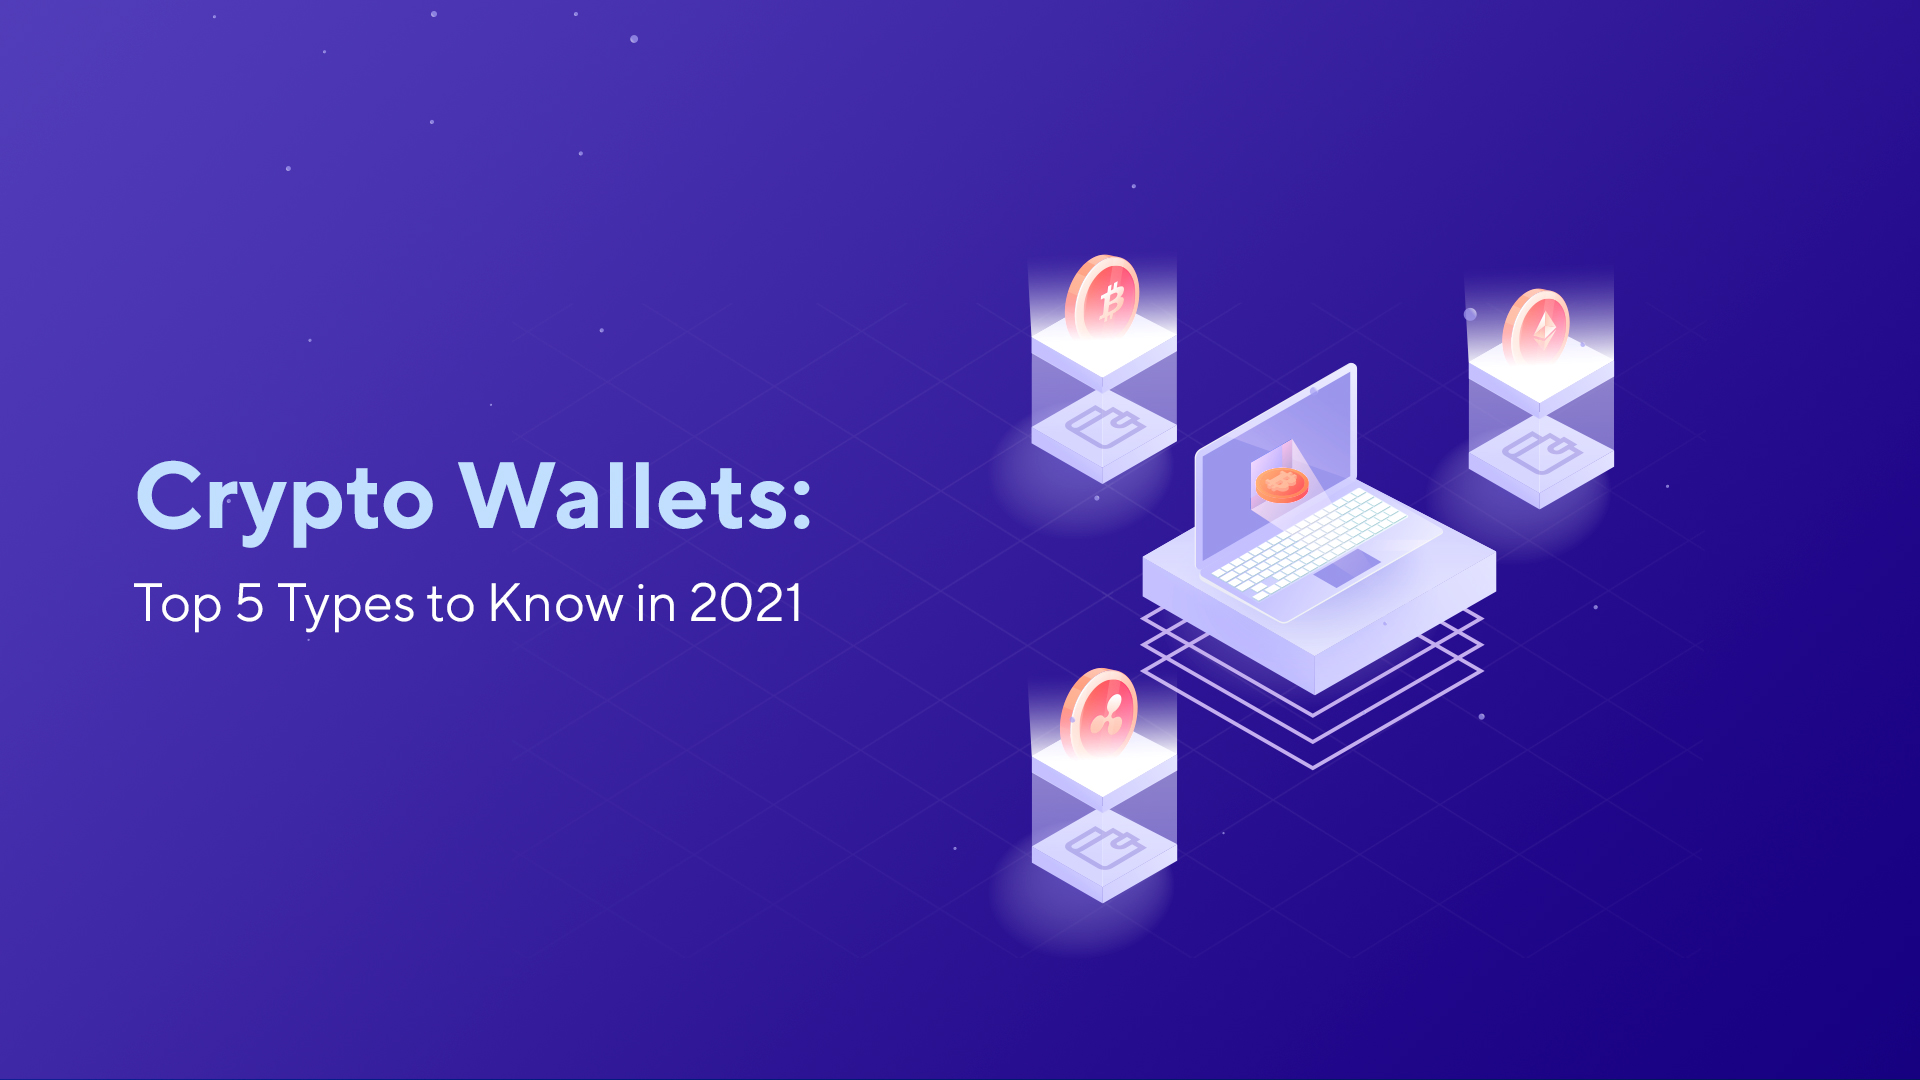 Cryptocurrency Wallets: Top 5 Types to Know in 2021